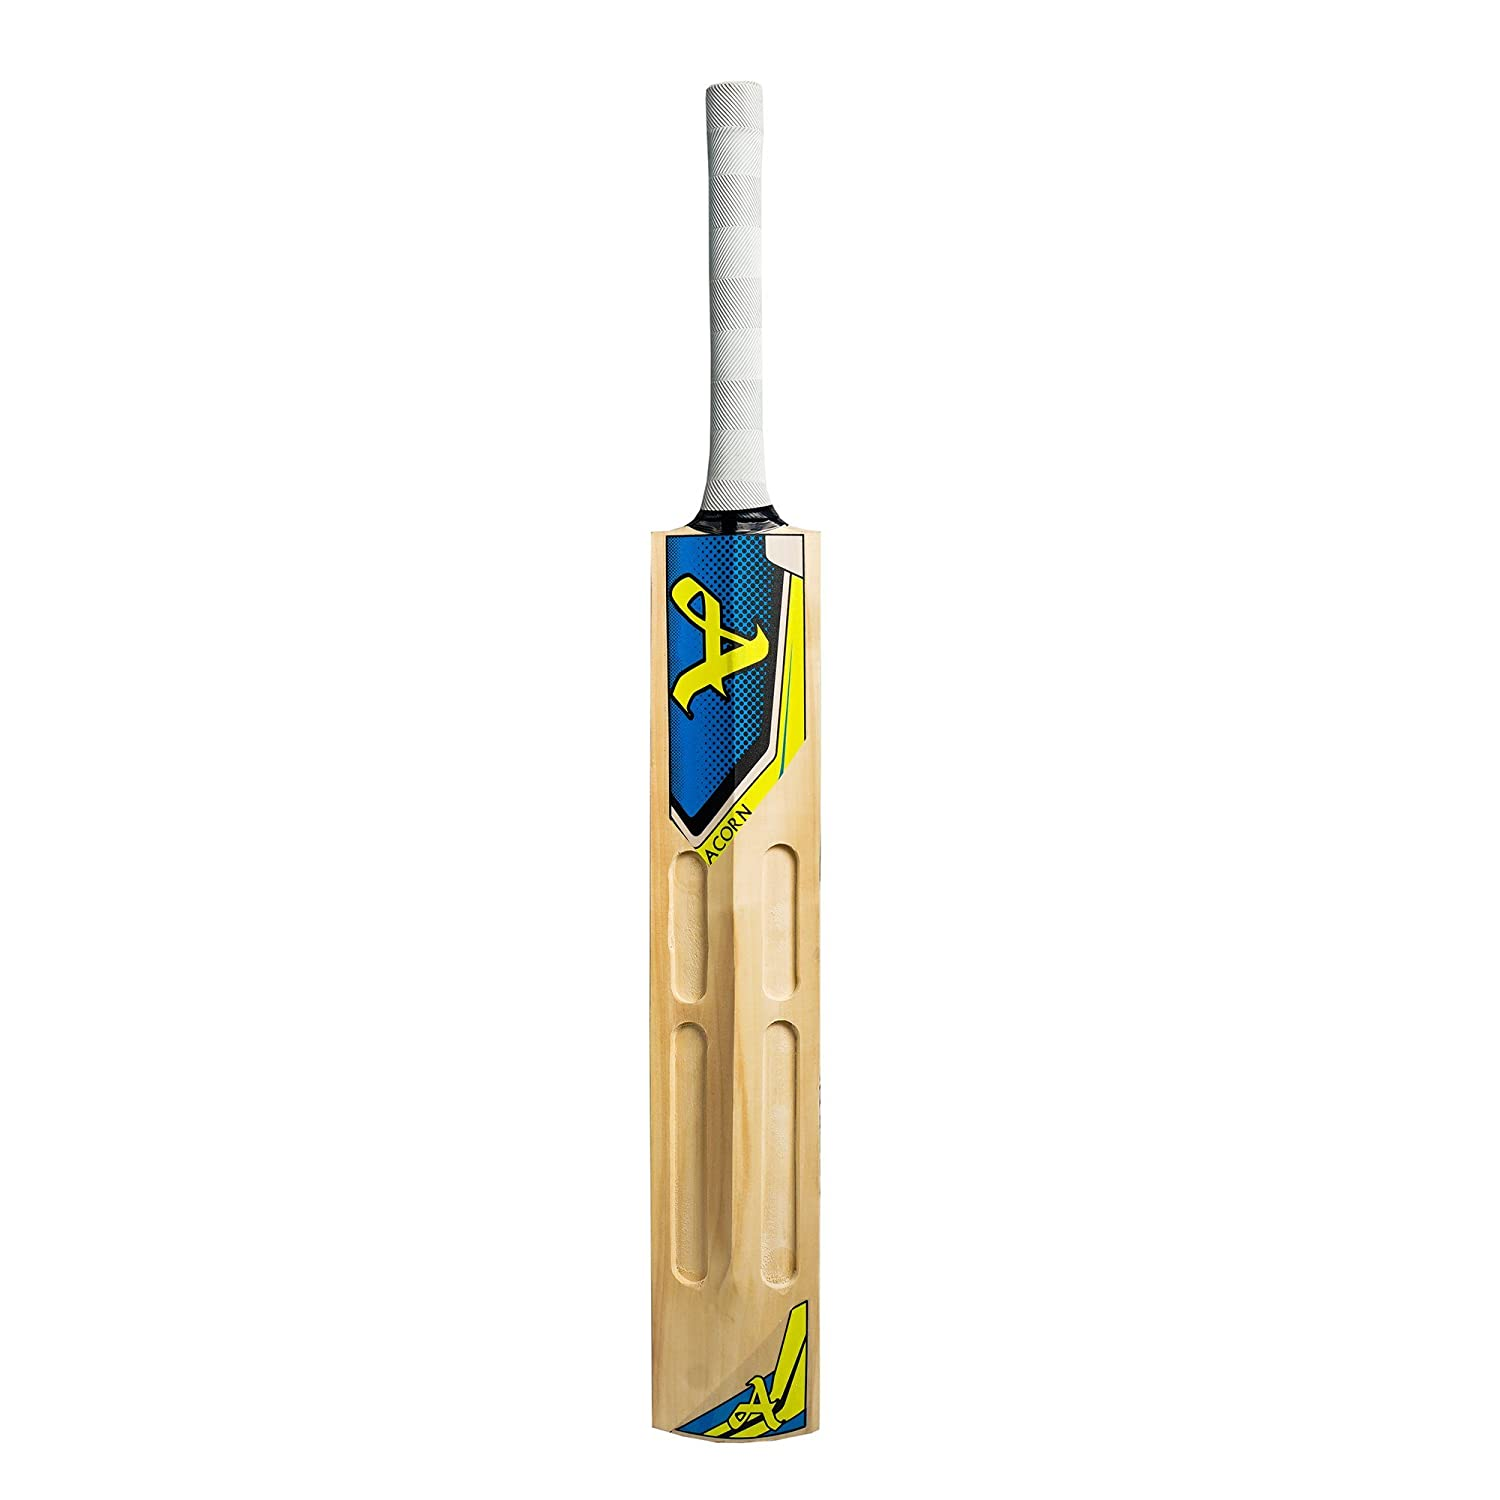 Acorn Designer Kashmir Willow Cricket Bat